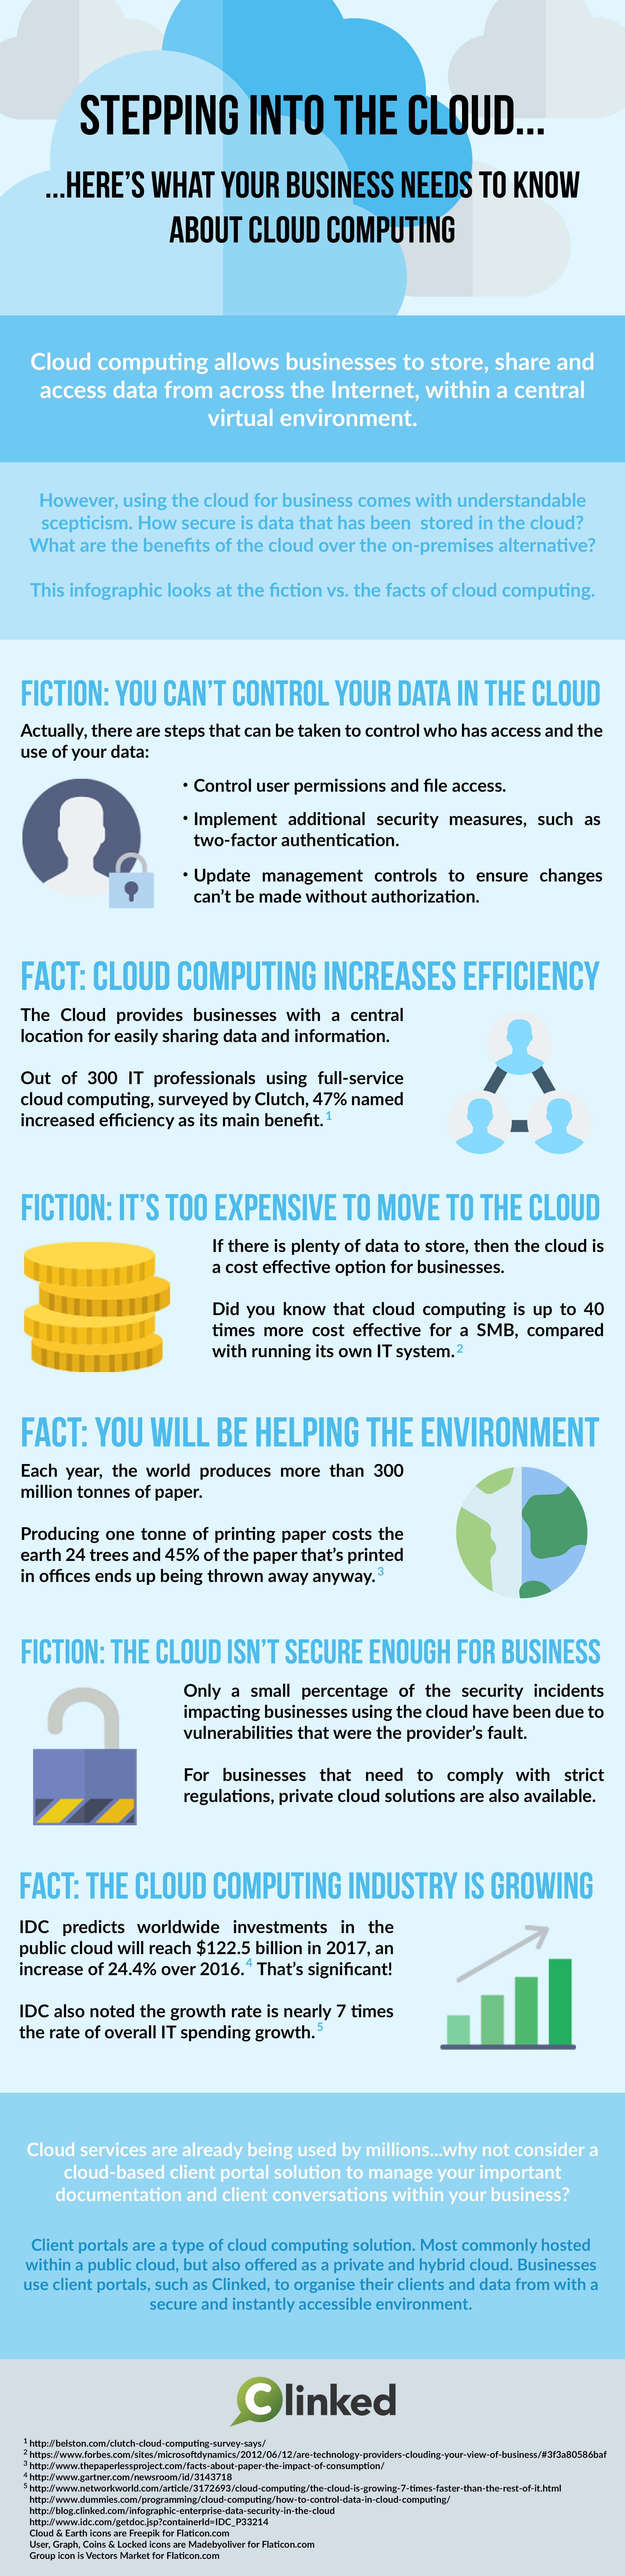 Stepping into the Cloud... Fact vs. Fiction of using Cloud Computing for business [Infographic]